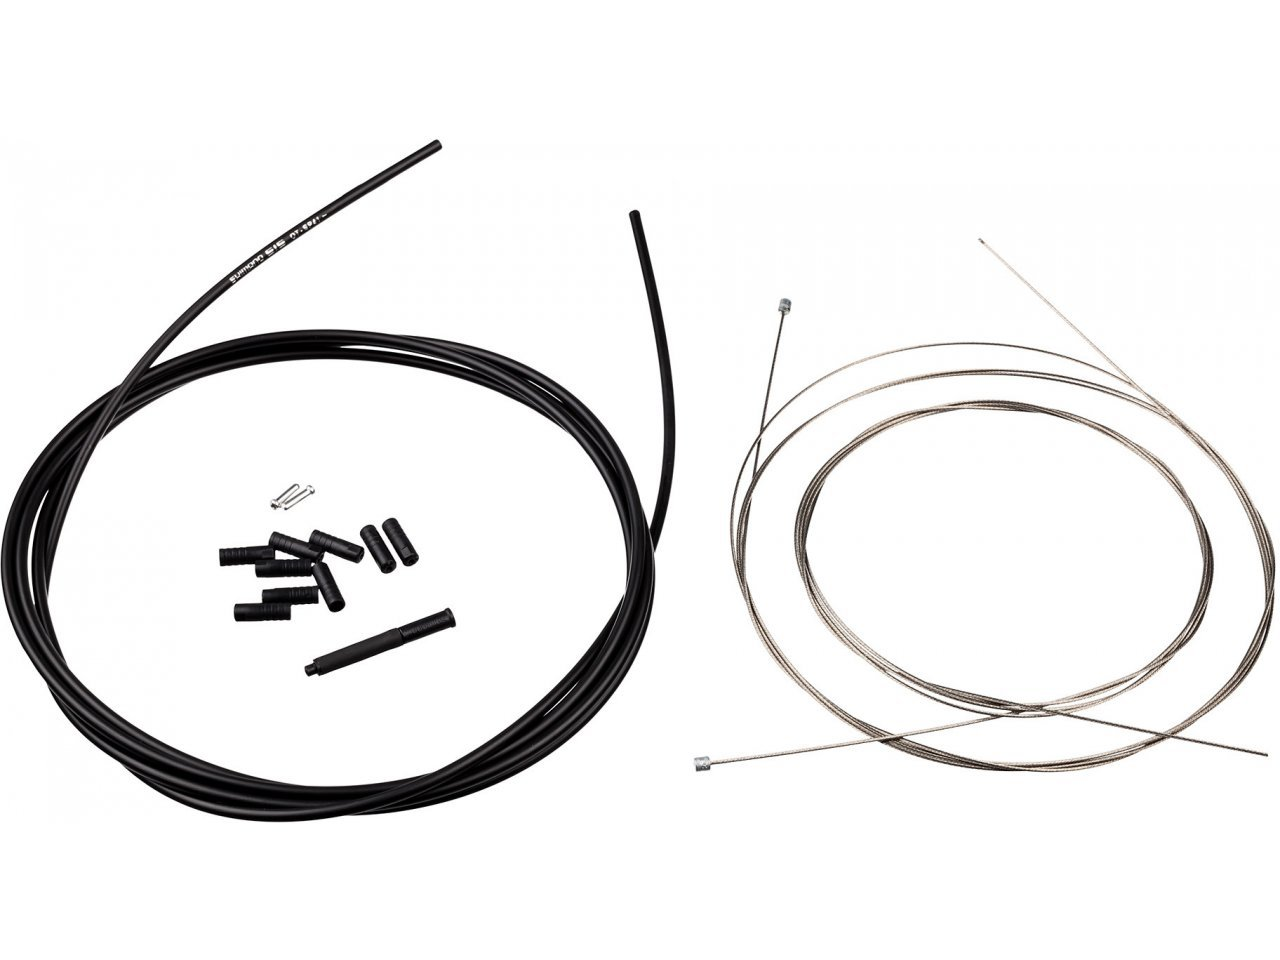 Black Shimano MTB Stainless Brake Cable and Housing Set